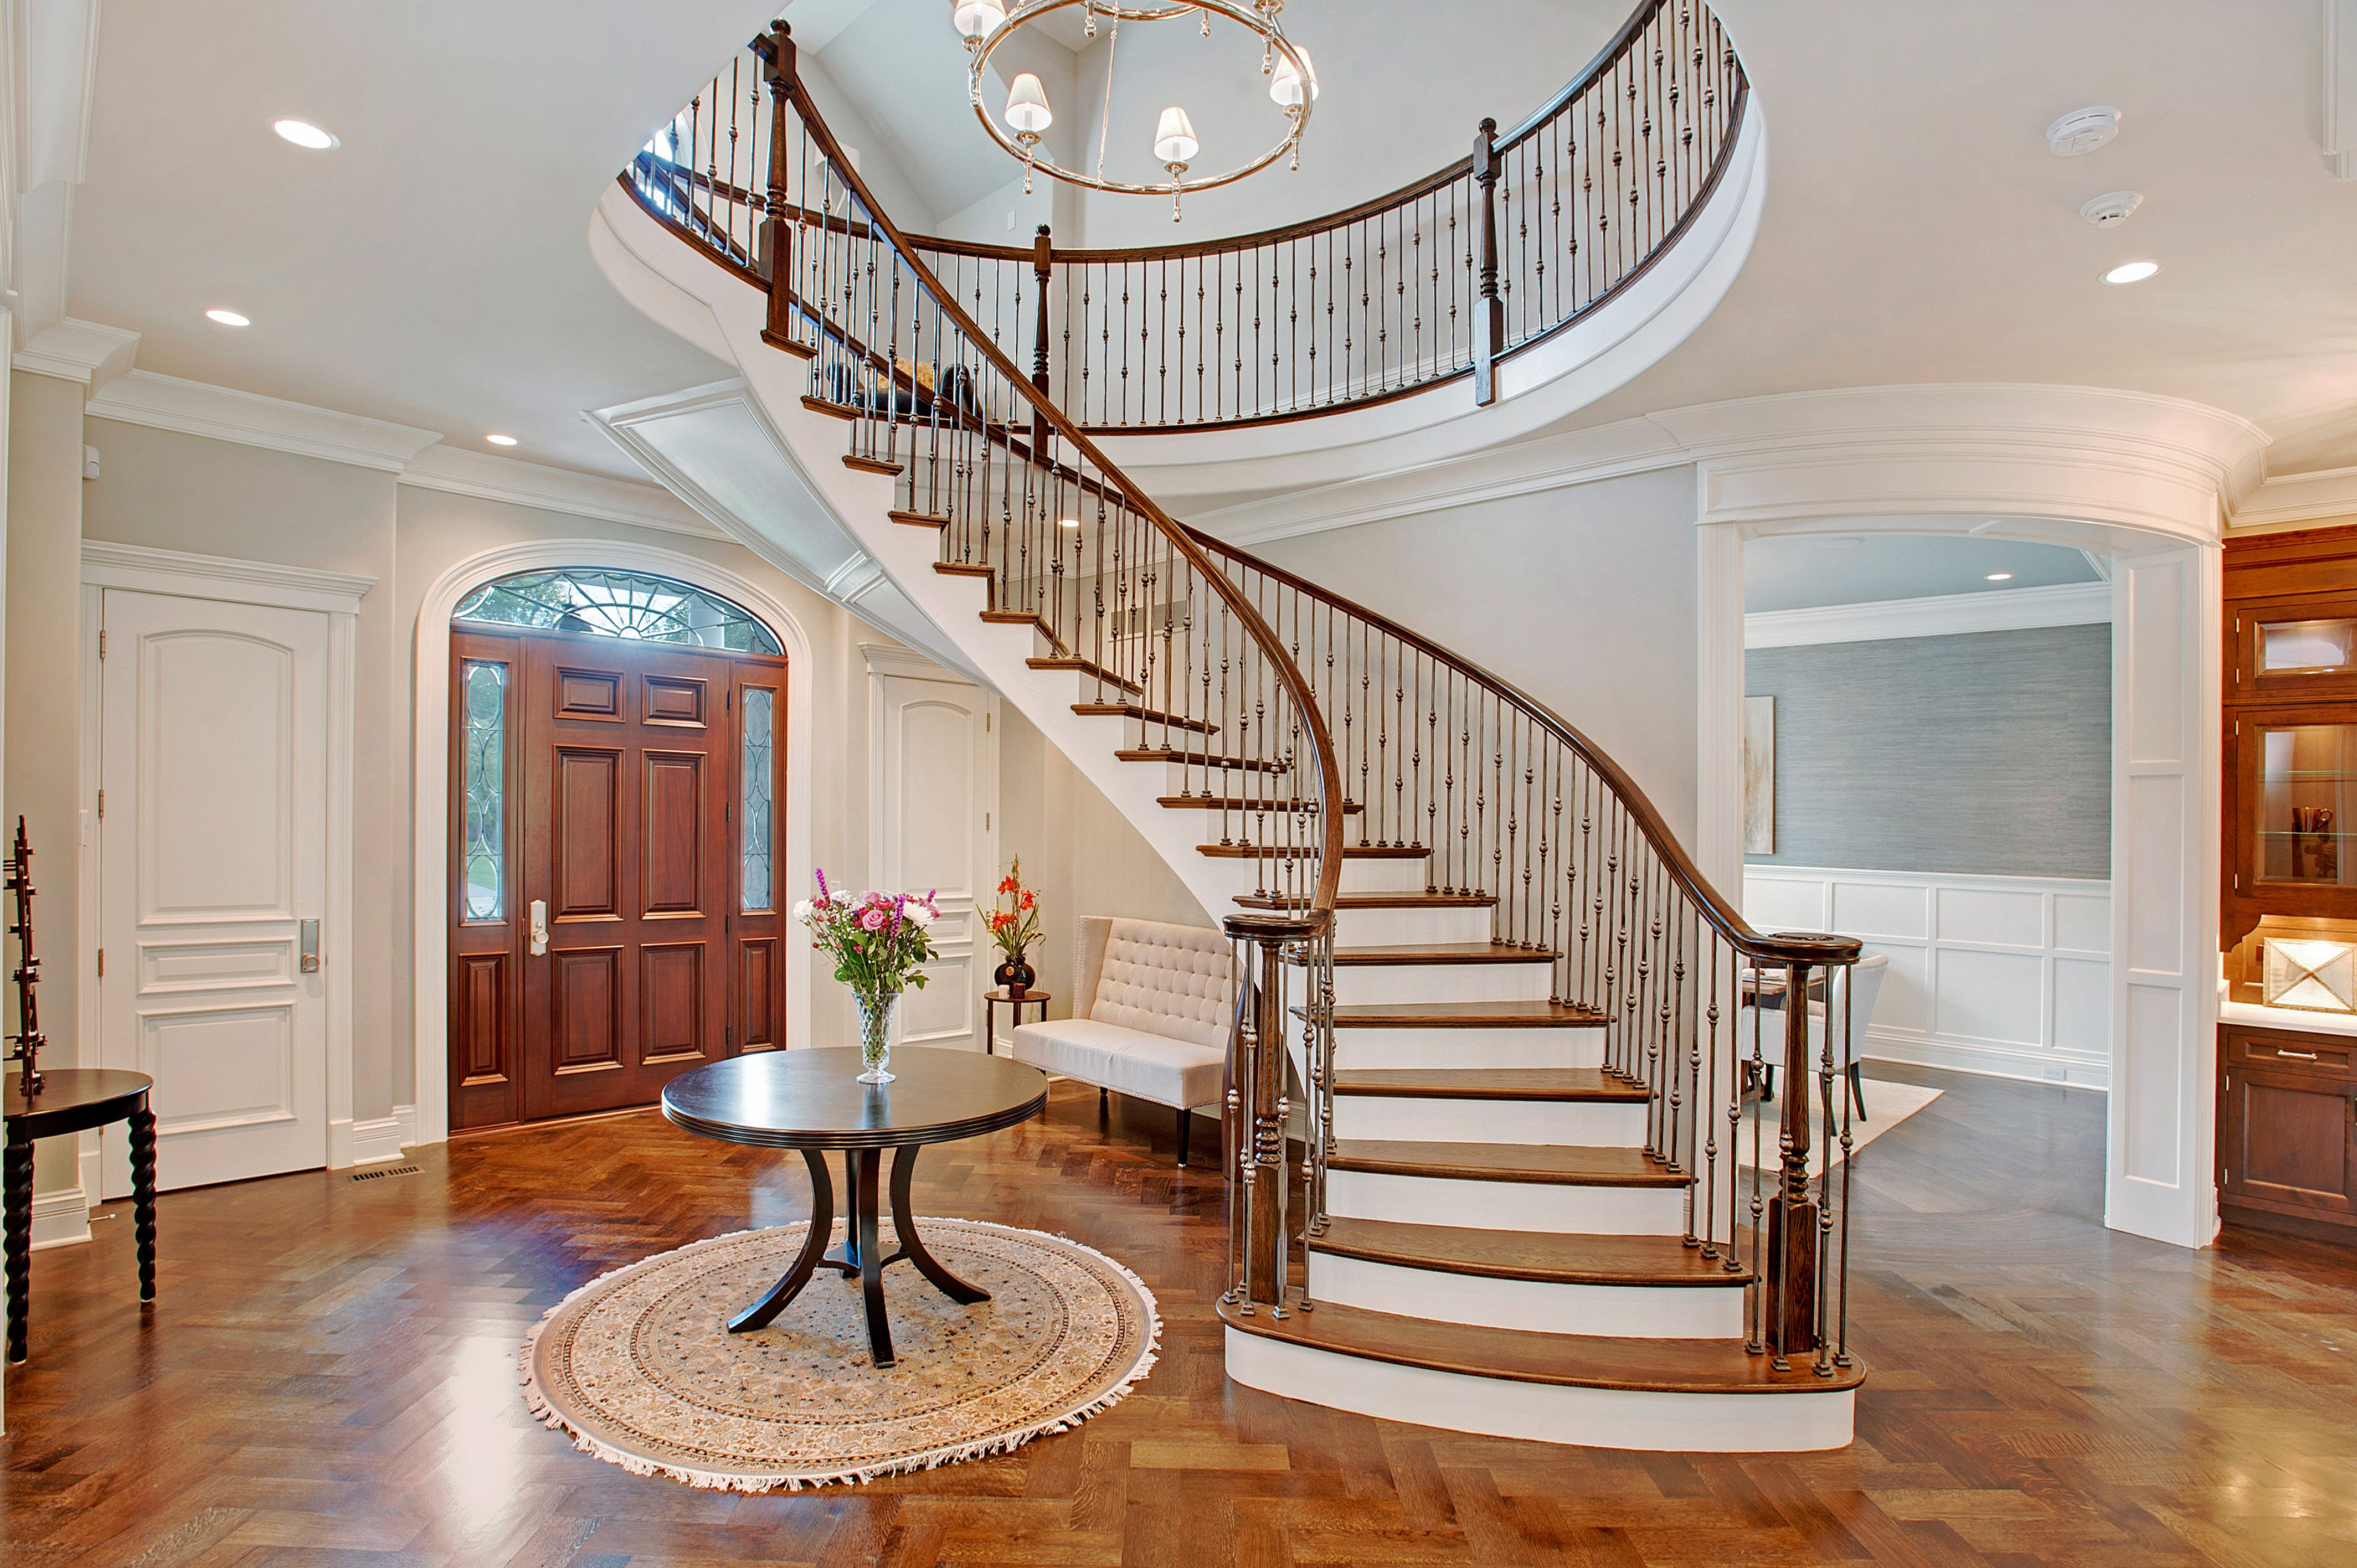 1000+ images about Luxury Homes on Pinterest